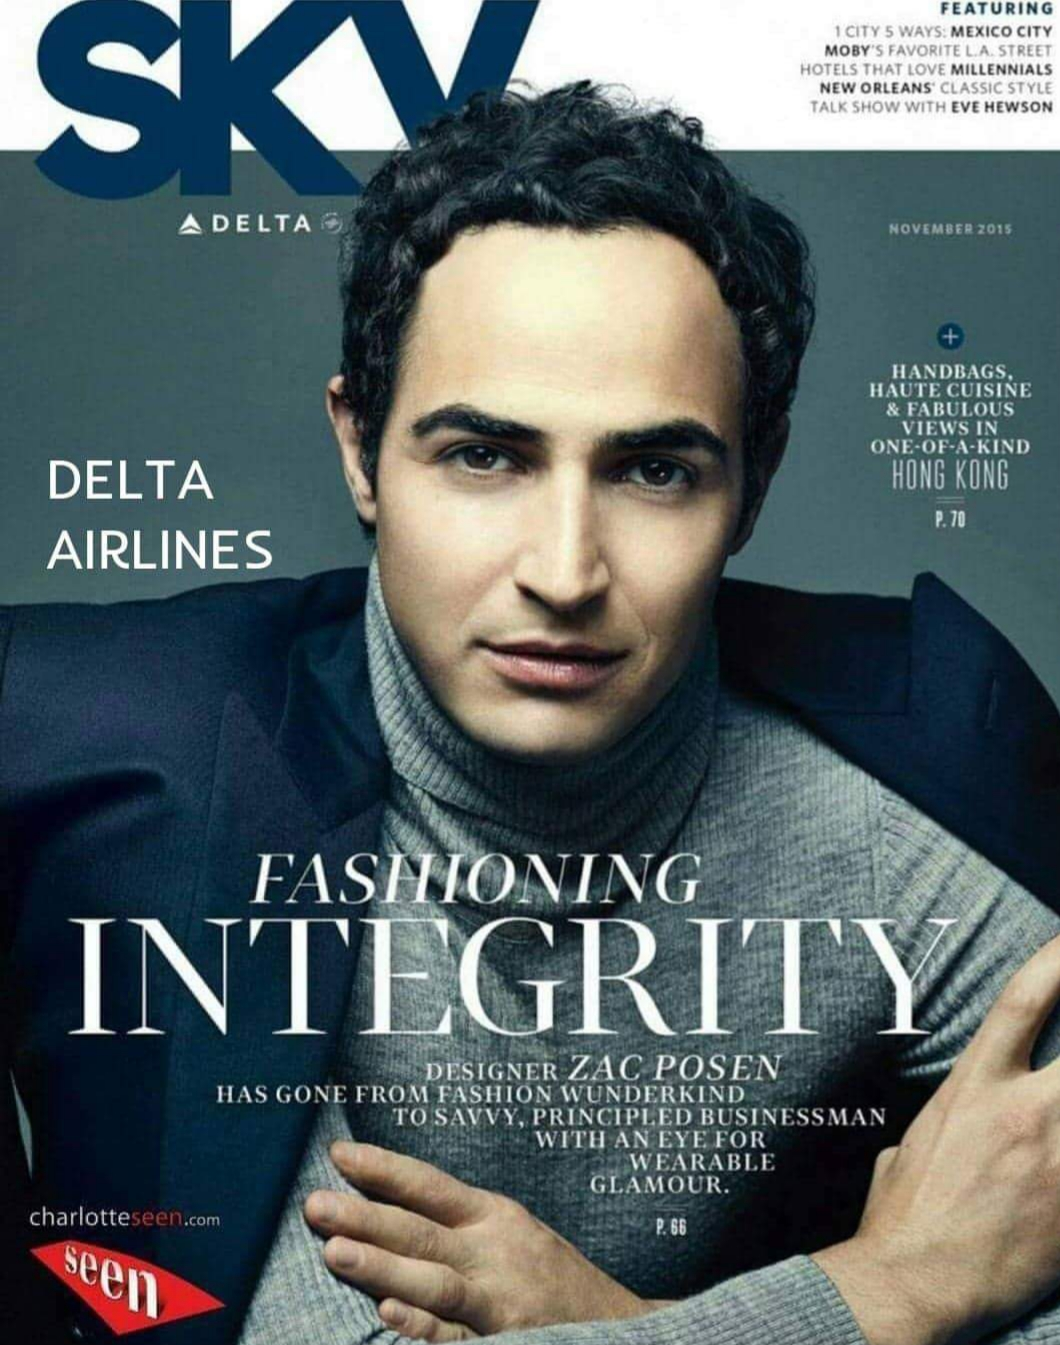 """DELTA AIRLINES/ZAC POSEN Fashion Designer working with Charlotte Seen In 2016 Charlotte Seen was honored to be in the launch for Zac Posen's designs for Delta Airlines new uniforms. """"Delta Air Lines gave a first look at long-awaited new crew uniforms for more than 60,000 workers in 2016 and was very honored to have Charlotte Seen to assist us with our models, logistics, show productions and back of house."""" said E. Dimbiloglu. Charlotte Seen had the pleasure to work with celebrity New York fashion designer Zac Posen, whose work has included outfits for high-profile women such as first lady Michelle Obama, Uma Thurman, Gwyneth Paltrow, Claire Danes and Rhianna. Given Posen's status as a star of the red carpet, set the partnership with Delta and has heightened anticipation among industry observers about the carrier's new look."""